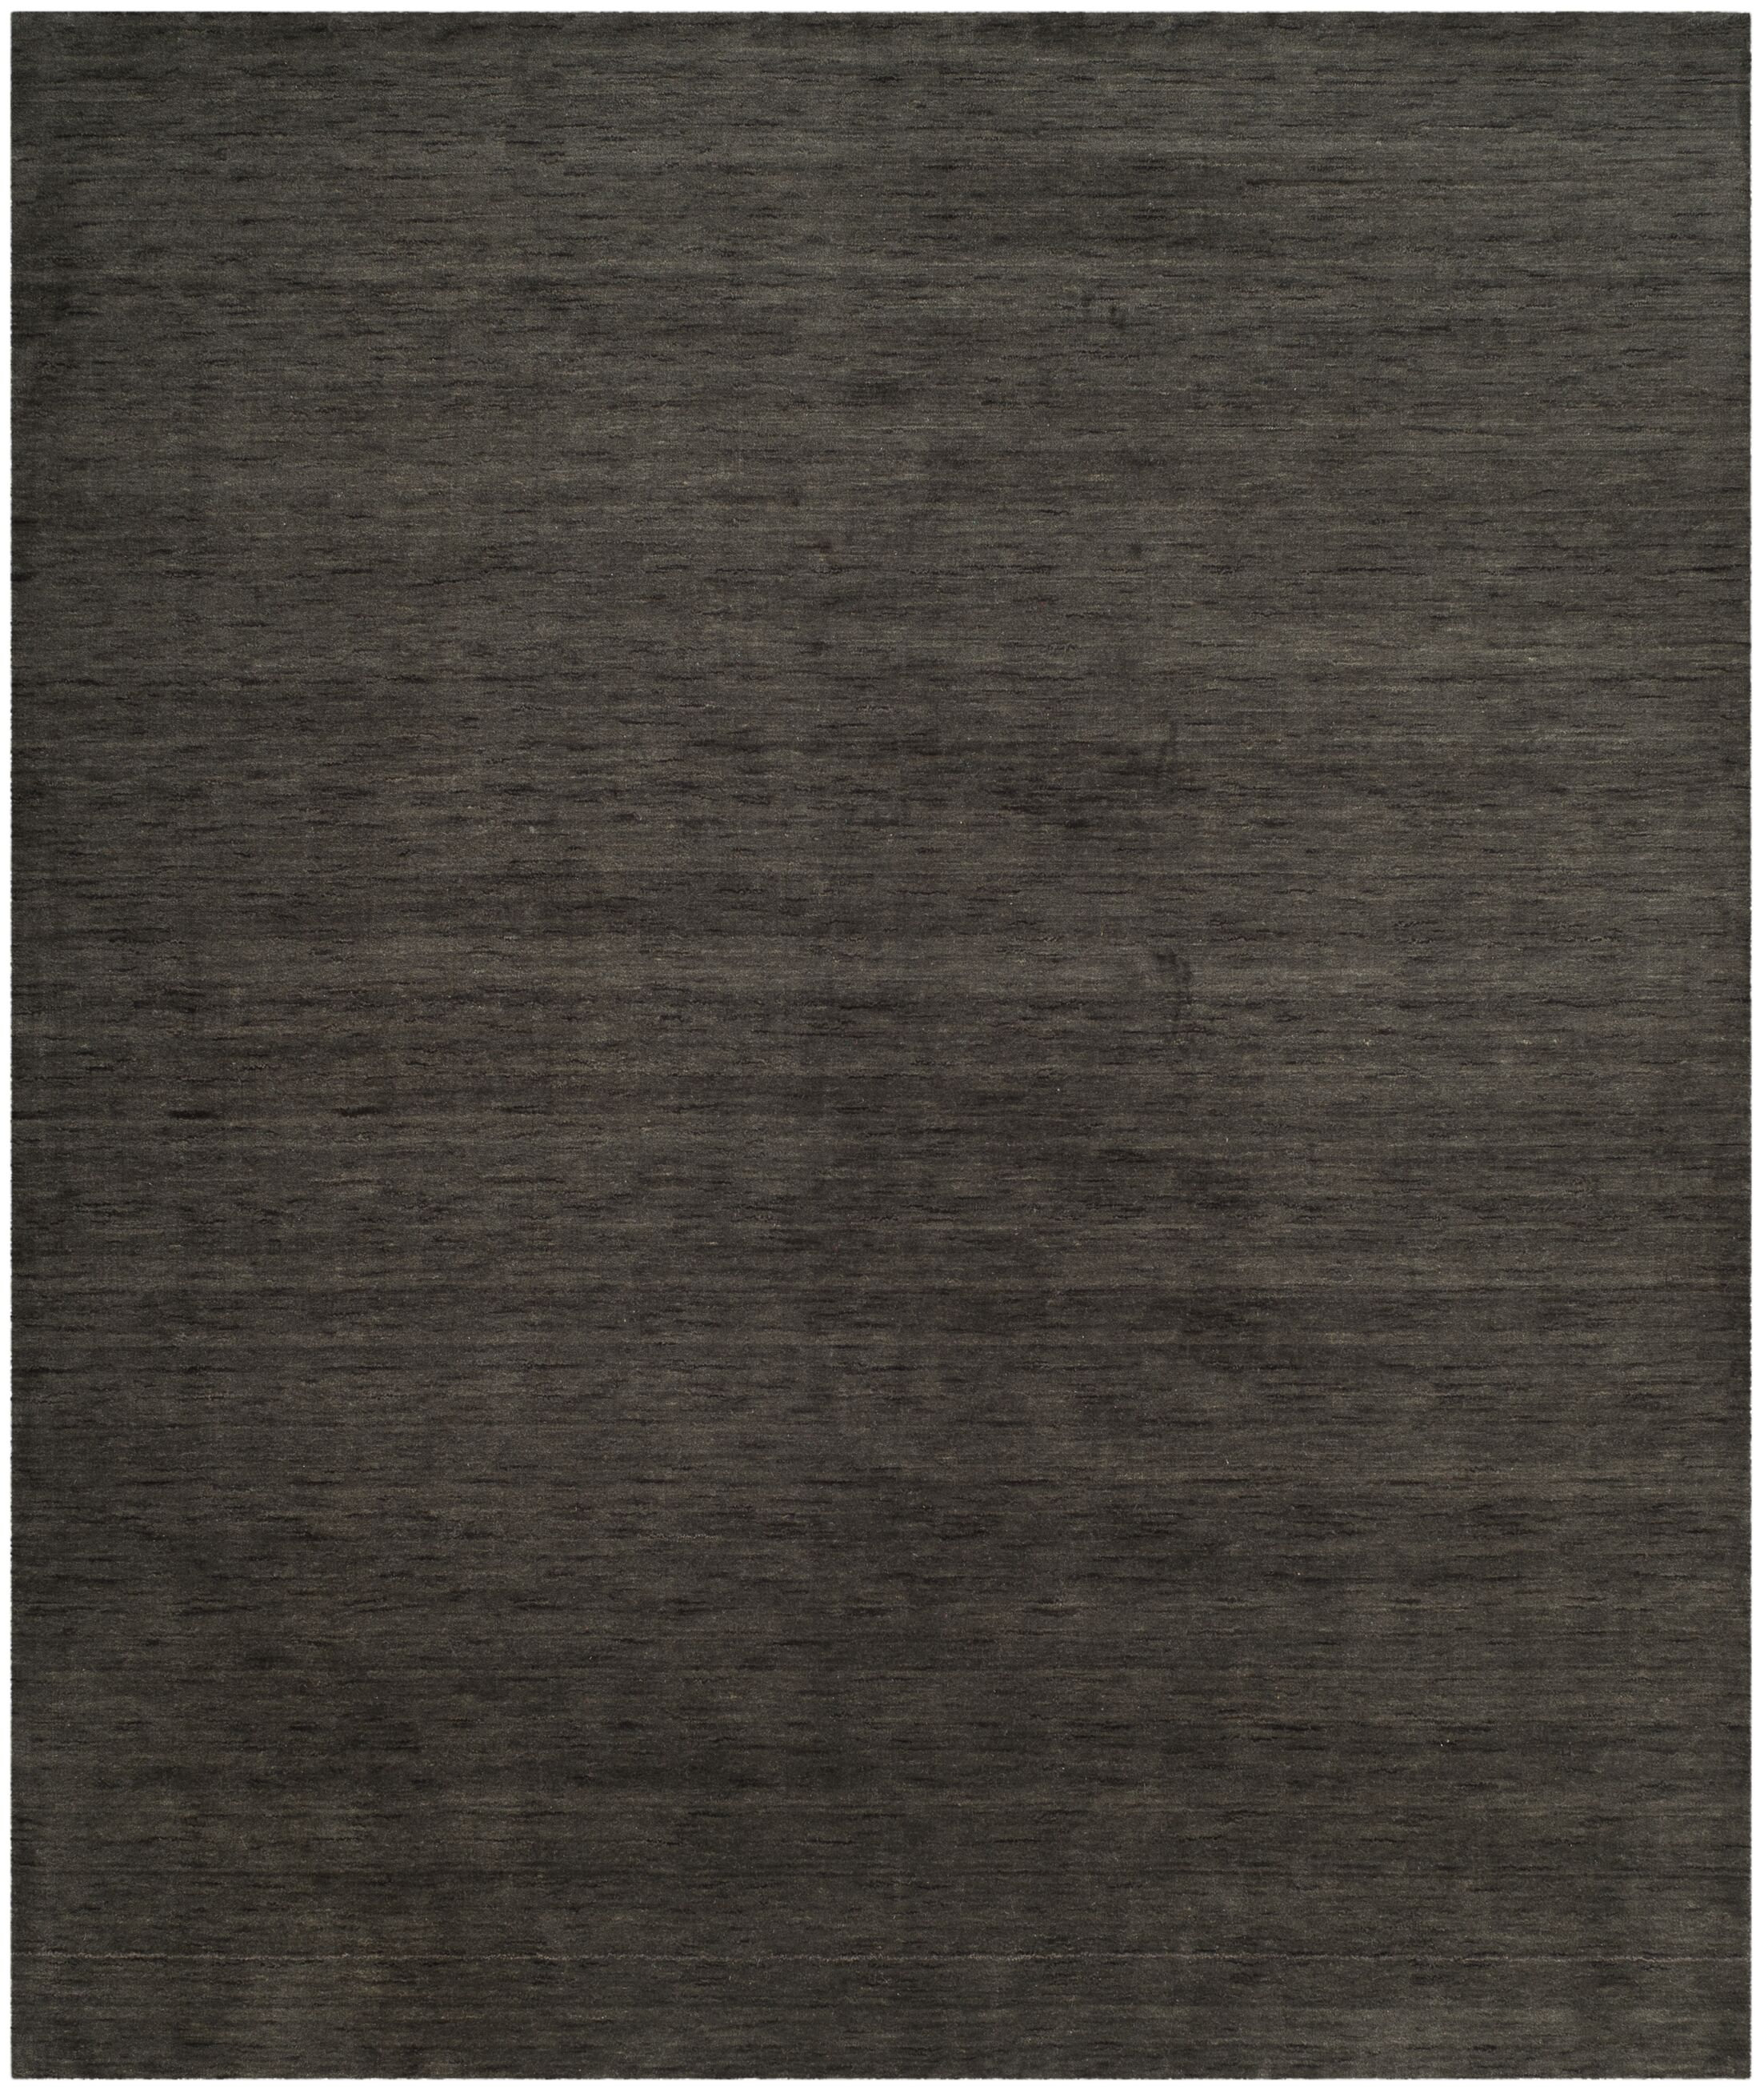 Aghancrossy Hand-Loomed Charcoal Area Rug Rug Size: Rectangle 6' x 9'